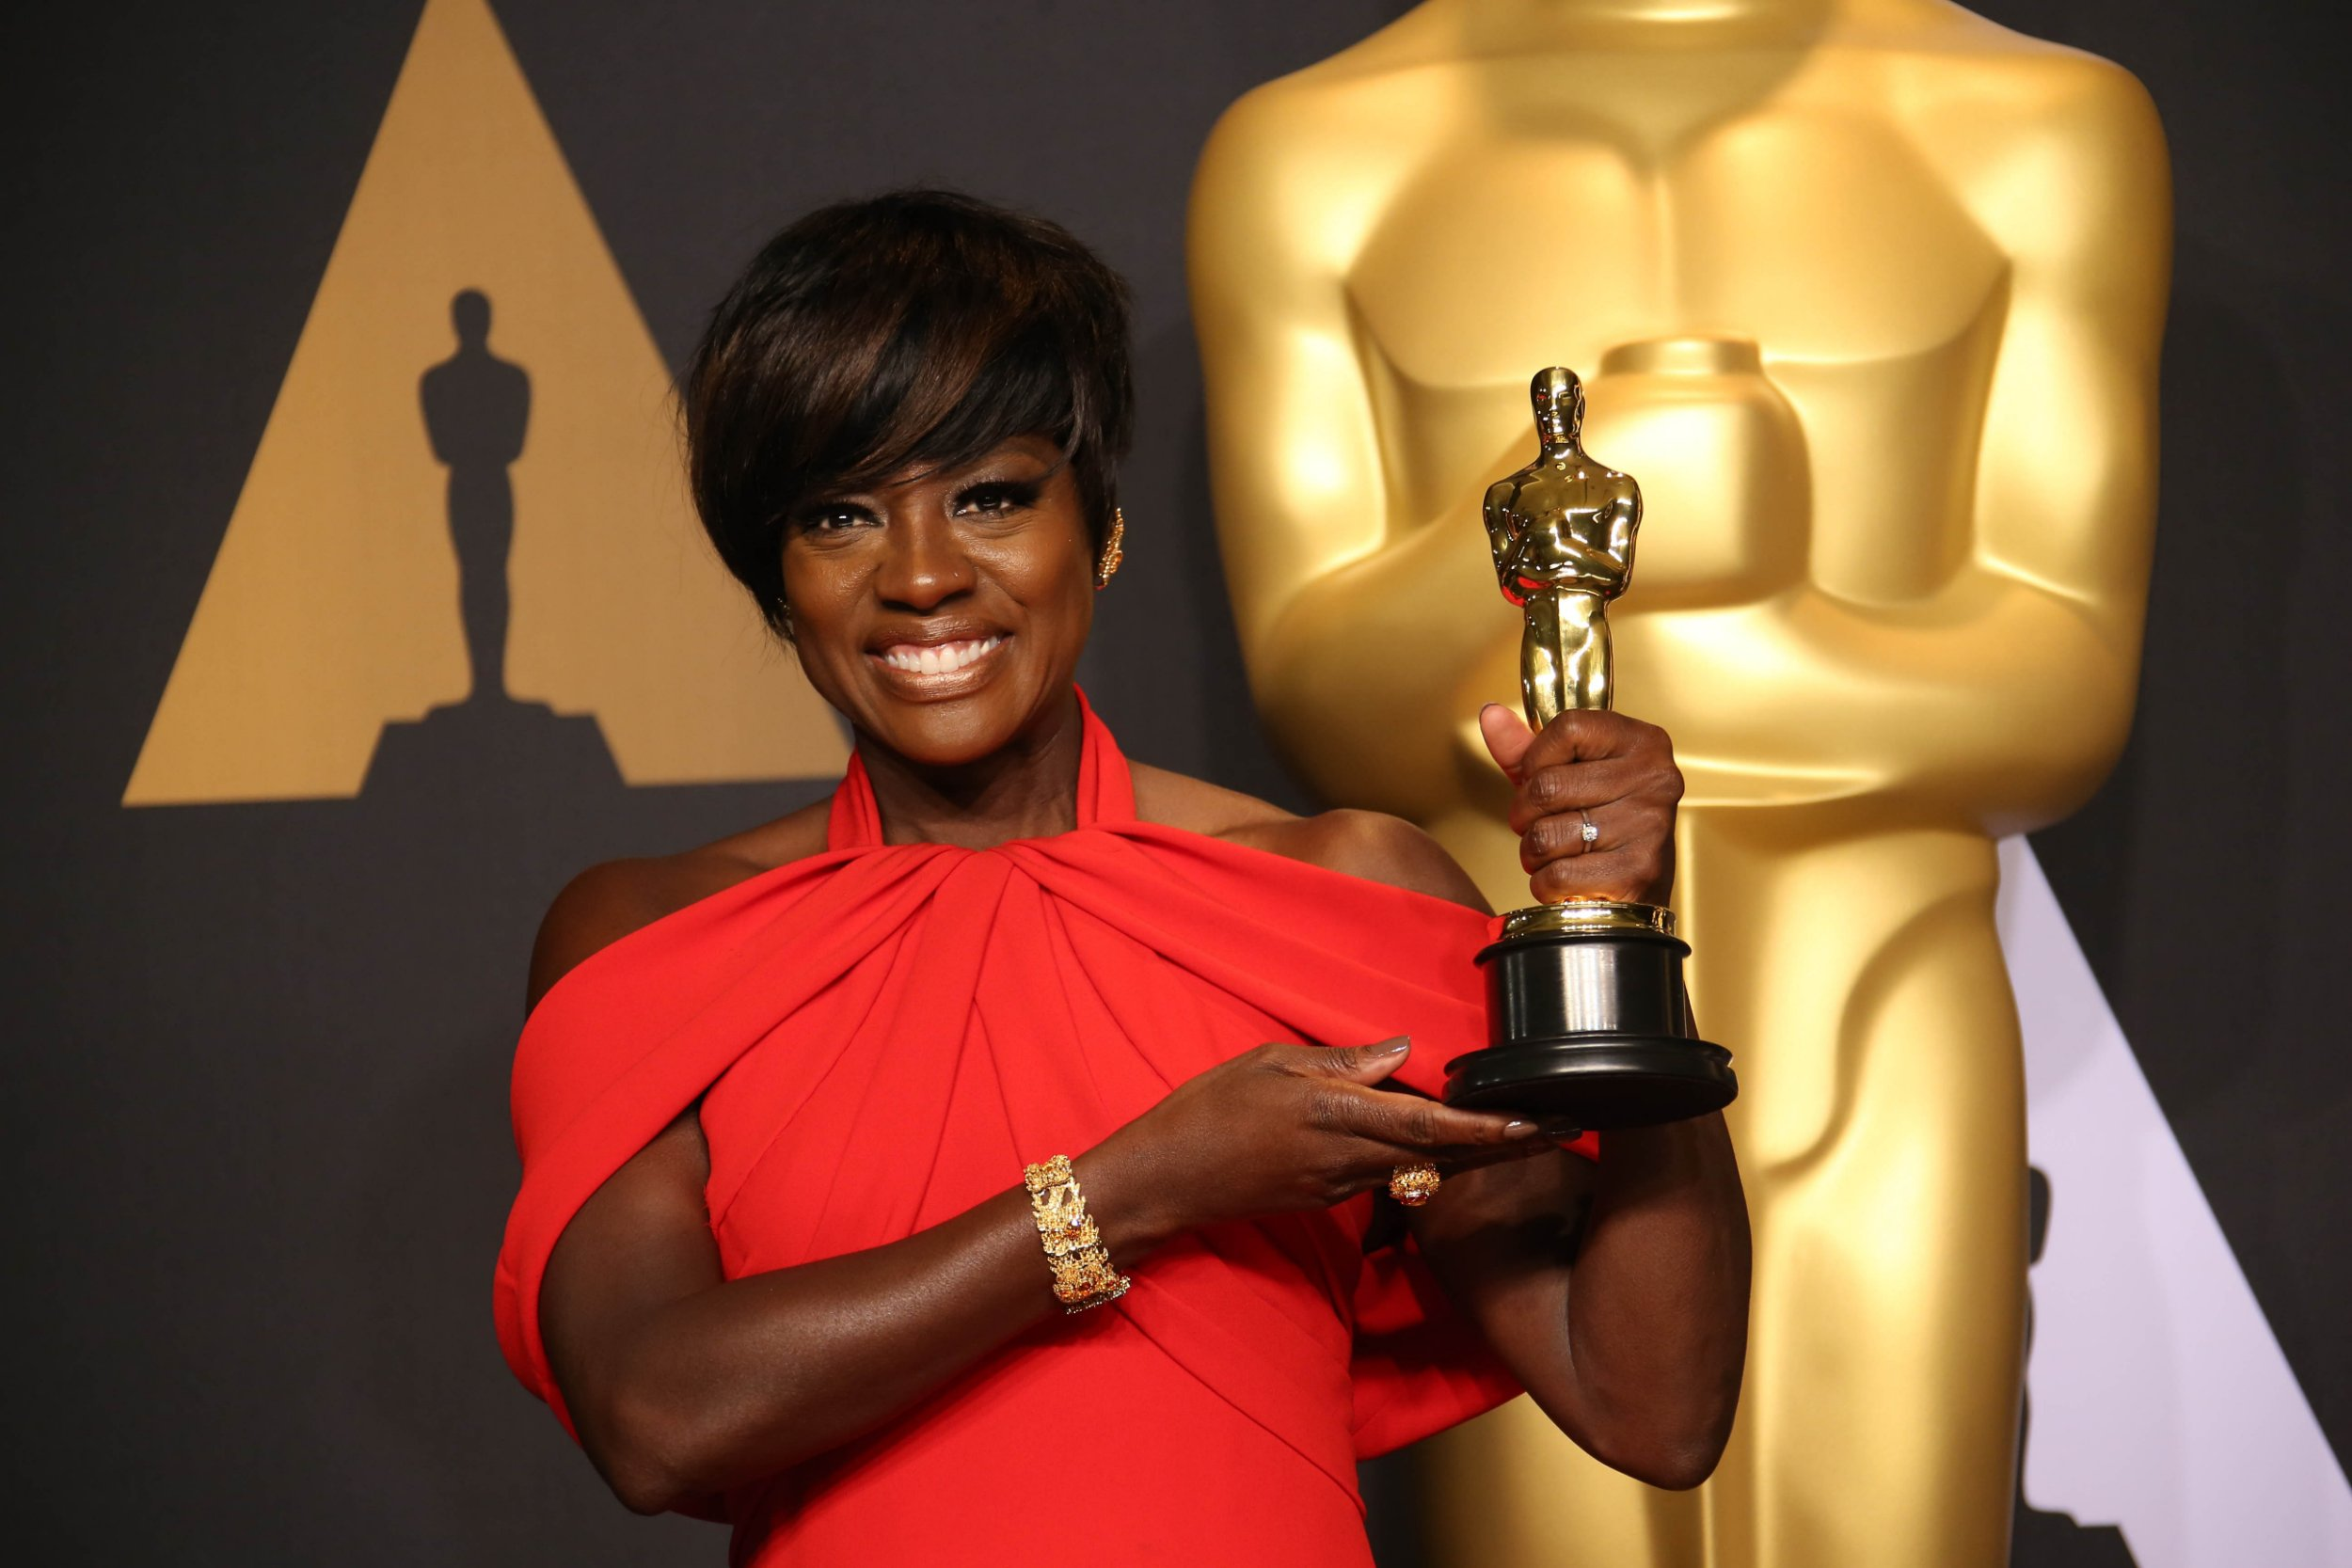 HOLLYWOOD, CA - FEBRUARY 26: Viola Davis poses with the Oscar for Best Actress in a Supporting Role for 'Fences' in the trophy room during the 89th Academy Awards at Dolby Theatre on February 26, 2017 in Hollywood, California. PHOTOGRAPH BY Dan MacMedan / ddp USA / Barcroft Images London-T:+44 207 033 1031 E:hello@barcroftmedia.com - New York-T:+1 212 796 2458 E:hello@barcroftusa.com - New Delhi-T:+91 11 4053 2429 E:hello@barcroftindia.com www.barcroftimages.com